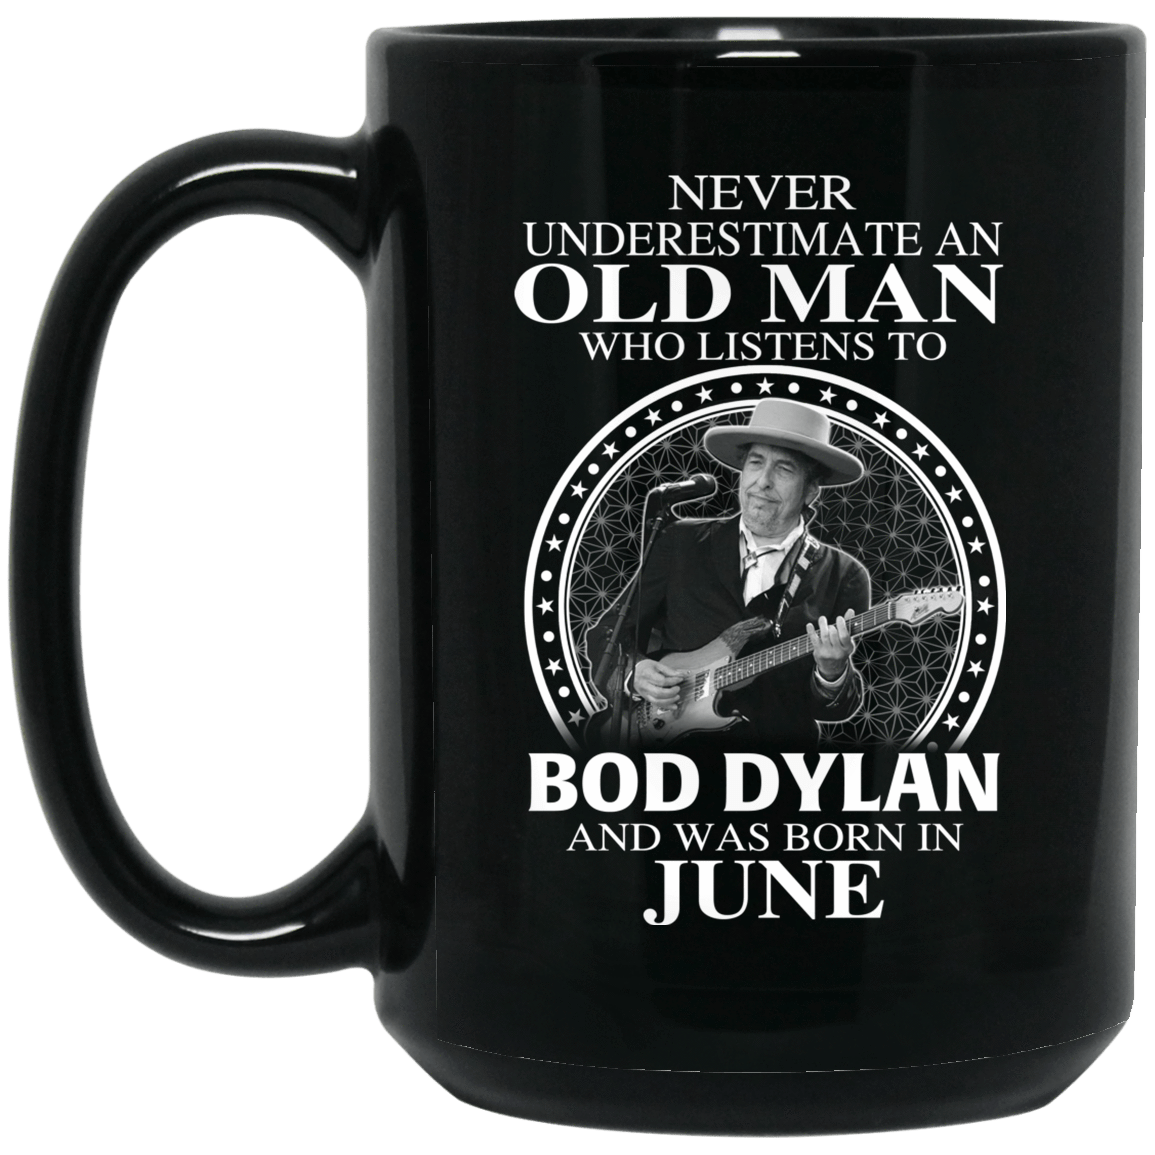 An Old Man Who Listens To Bob Dylan And Was Born In June Mug 1066-10182-76154386-49311 - Tee Ript